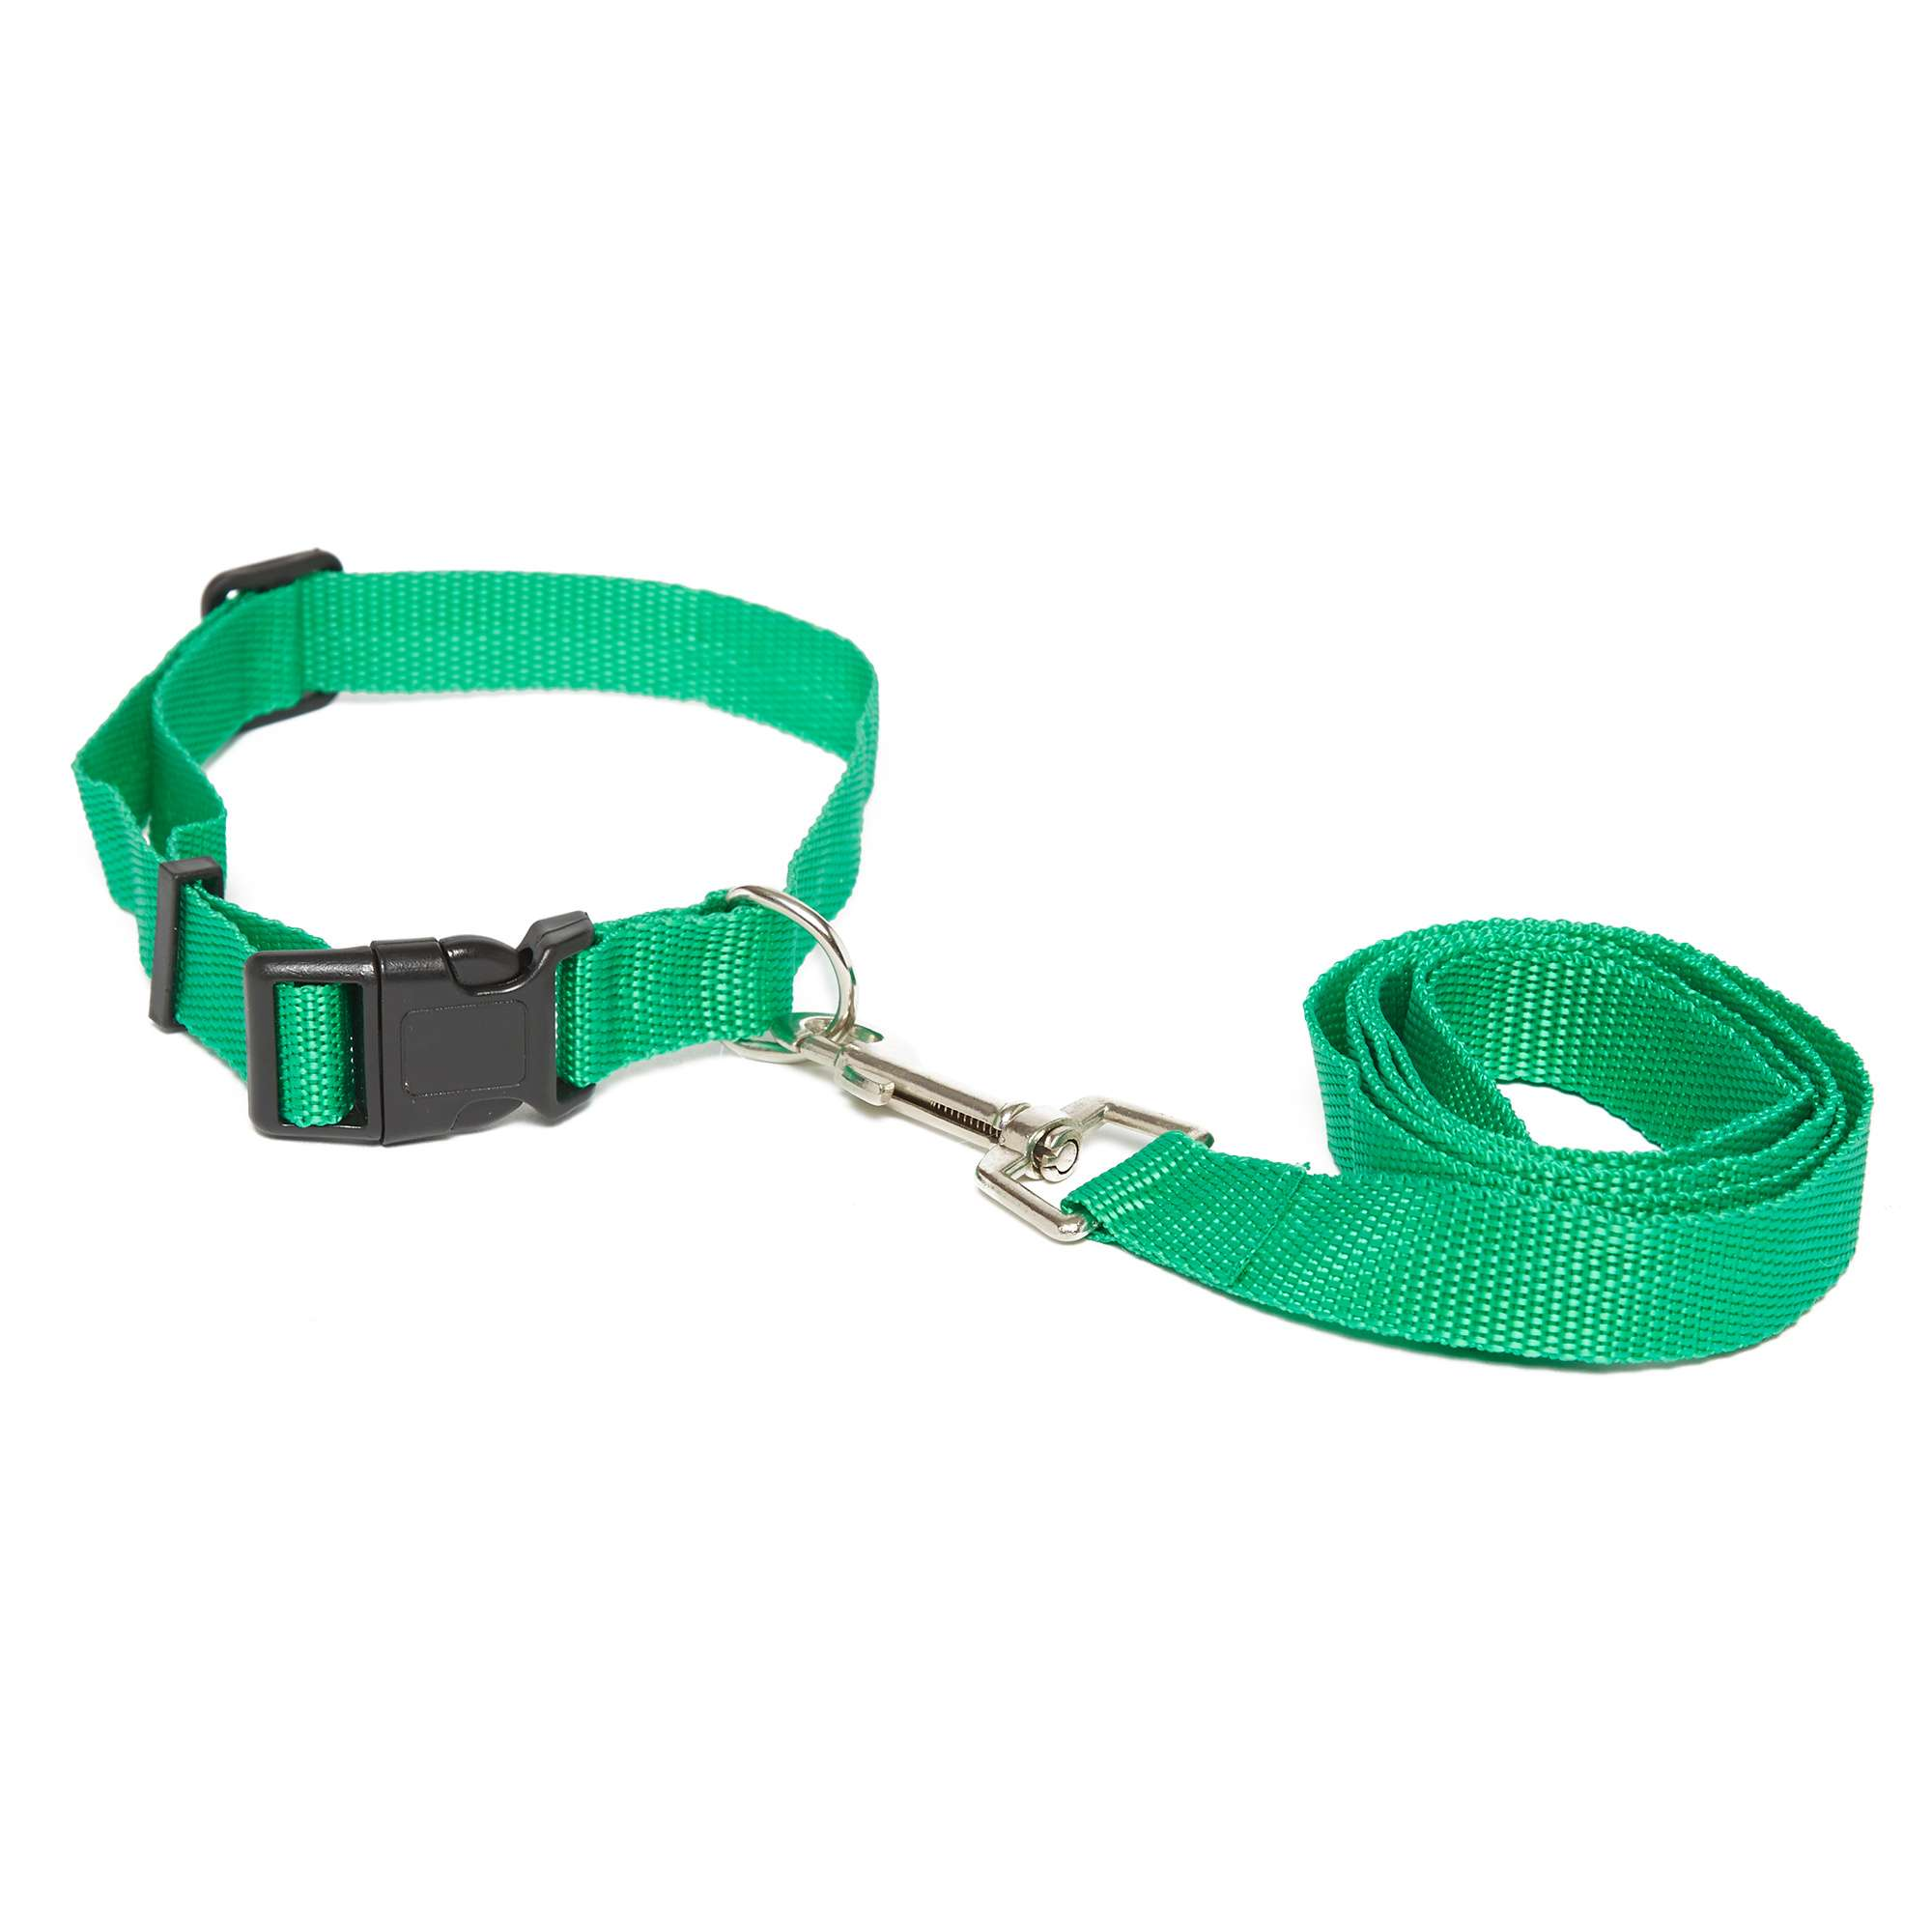 BOYZ TOYS Dog Lead and Collar